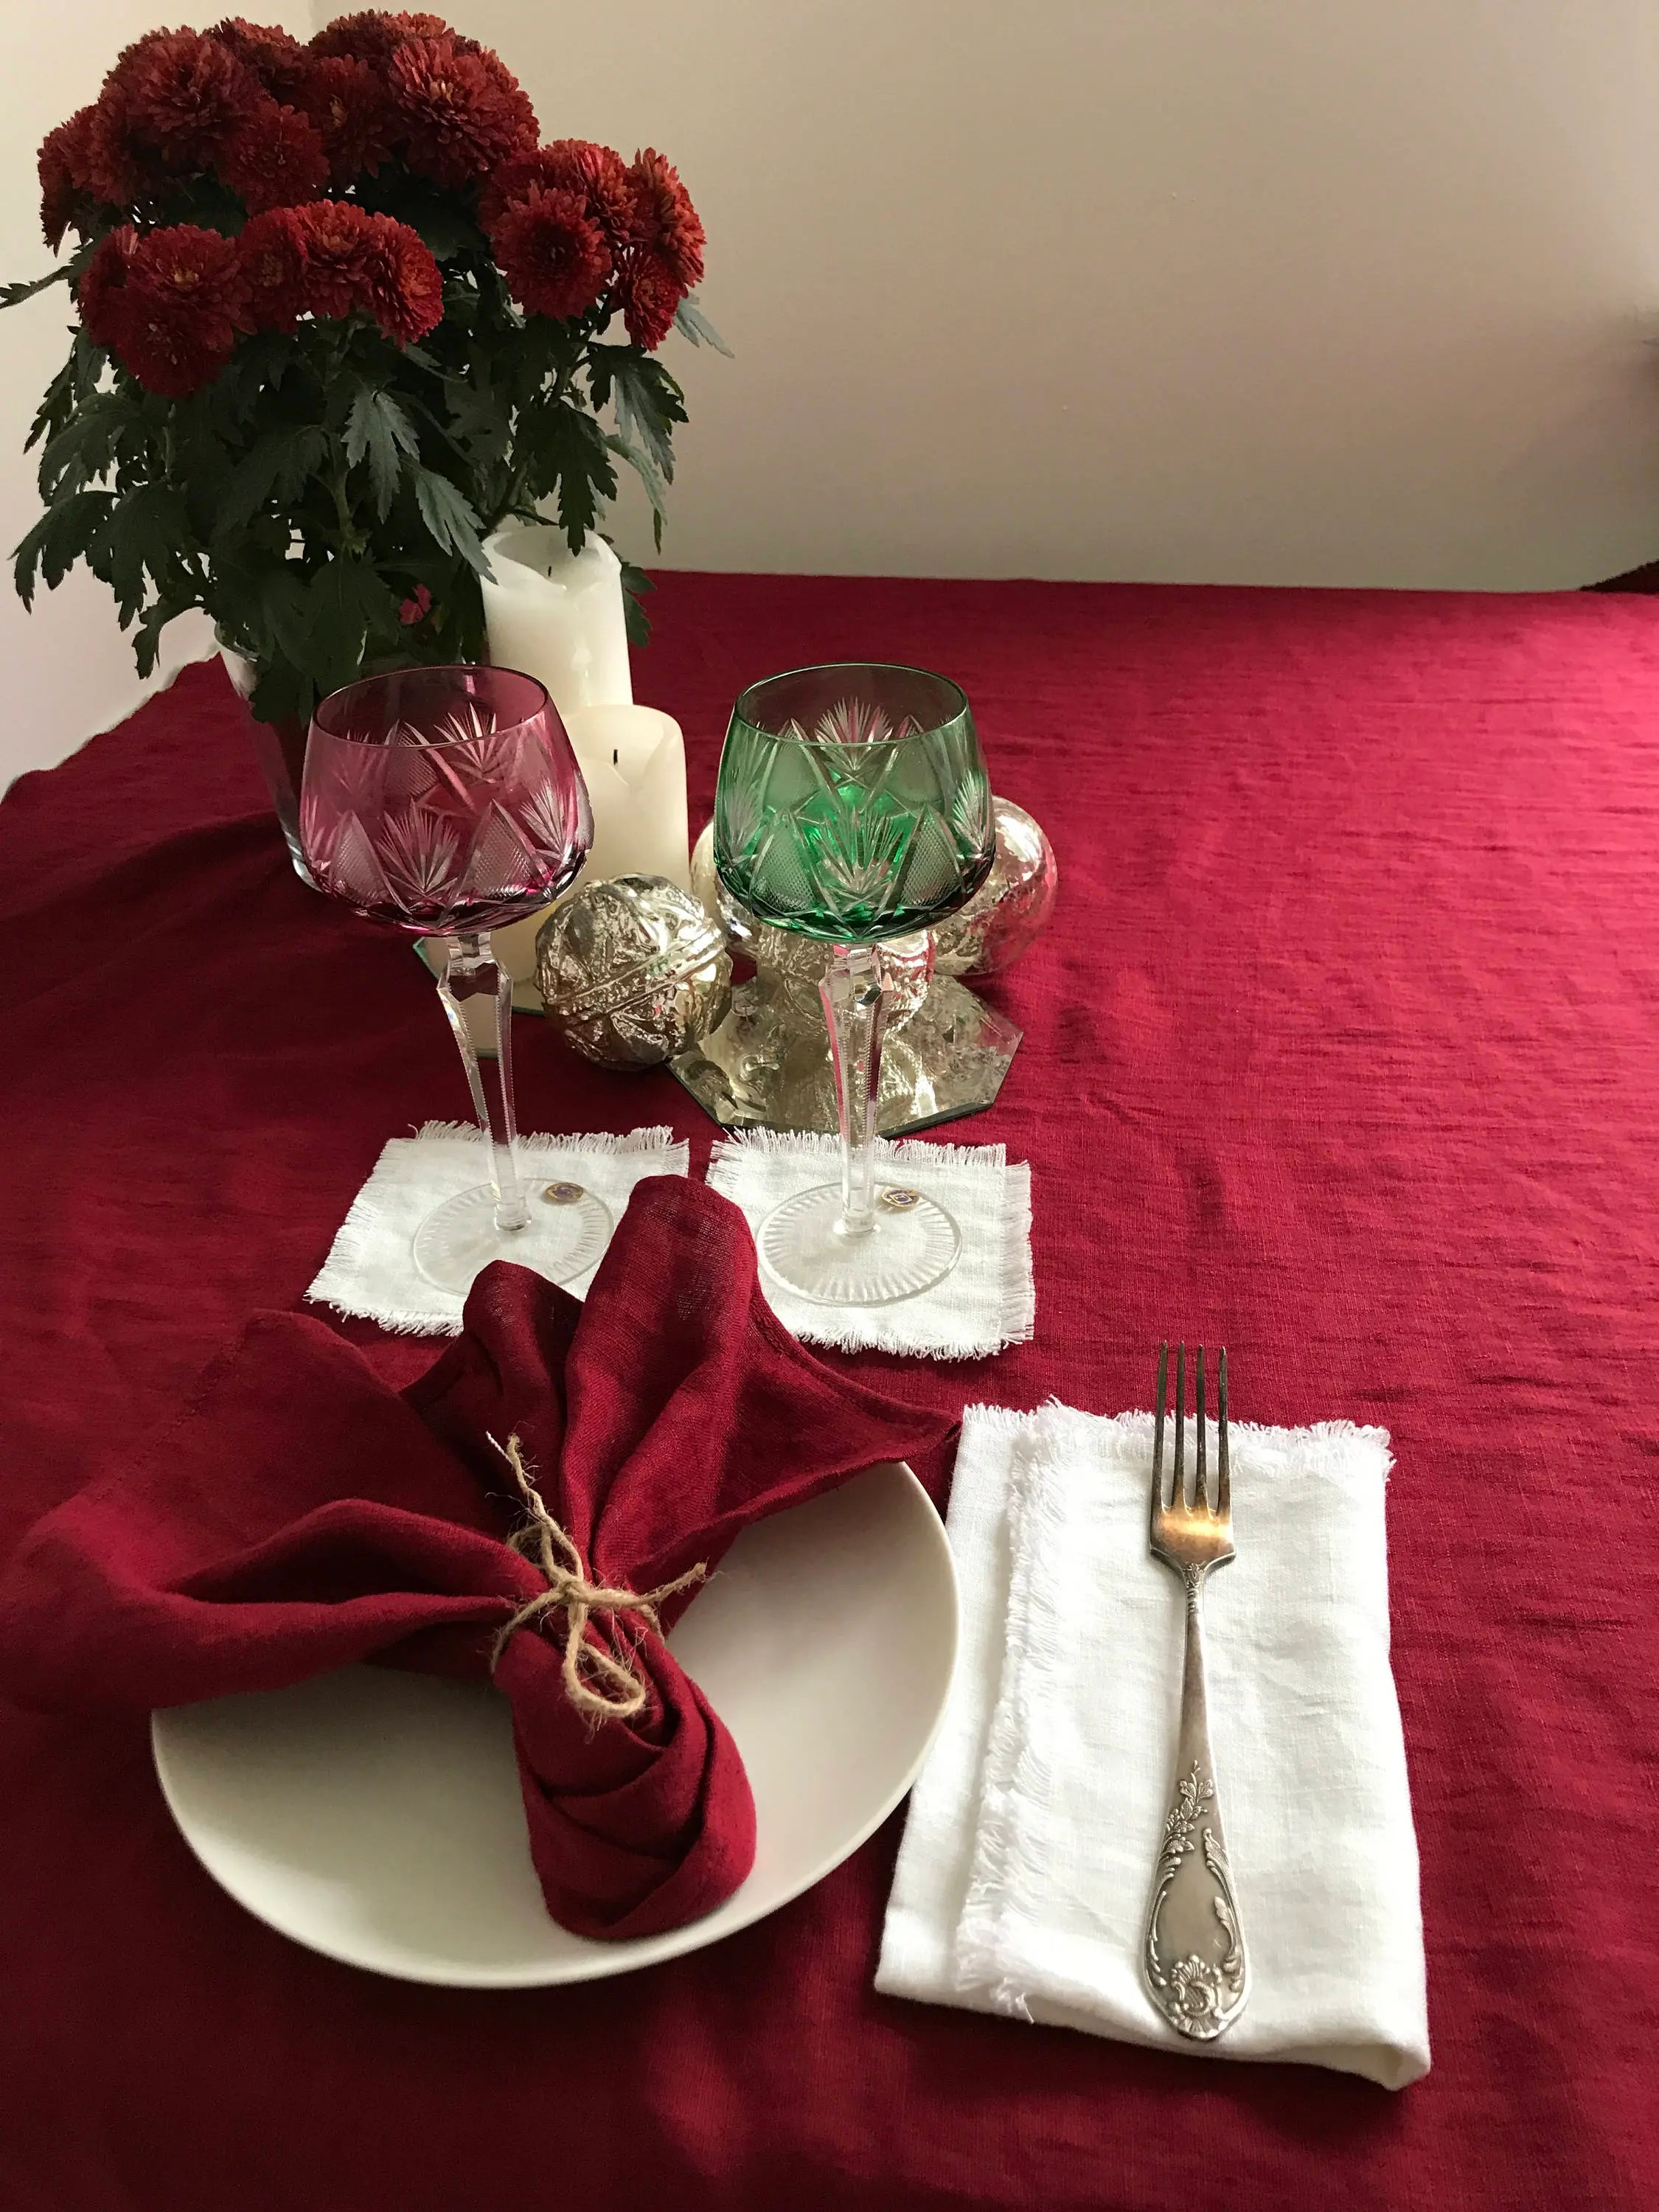 Christmas Tablecloths Australia Maroon Red Christmas Linen Table Cloth Christmas Tablecloth Rectangle Tablecloth Square Tablecloth Linen Custom Red Pure Linen Extra Large